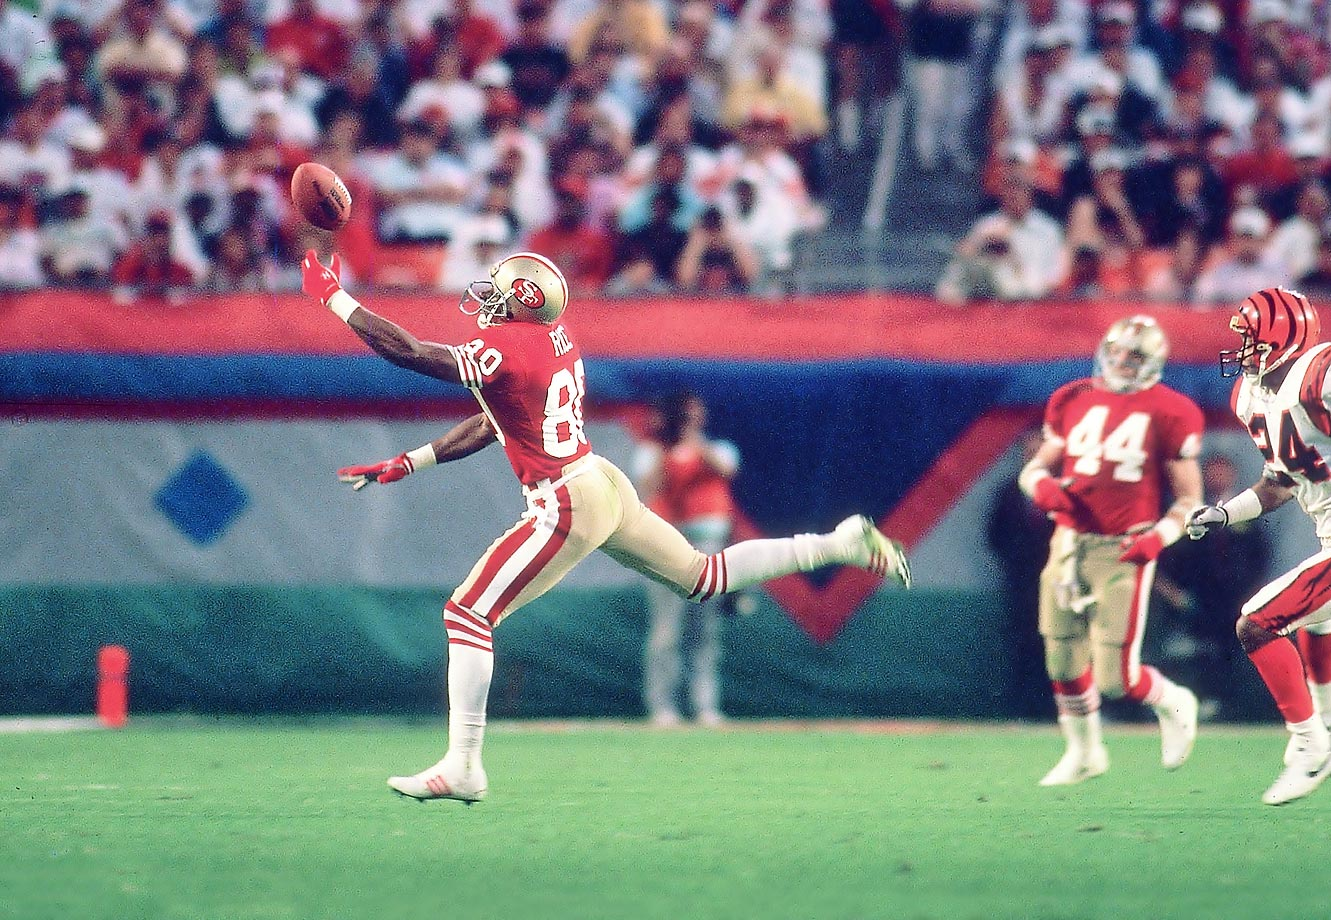 San Francisco 49ers wideout Jerry Rice stretches to catch a pass with one hand against the Cincinnati Bengals in January 1989.